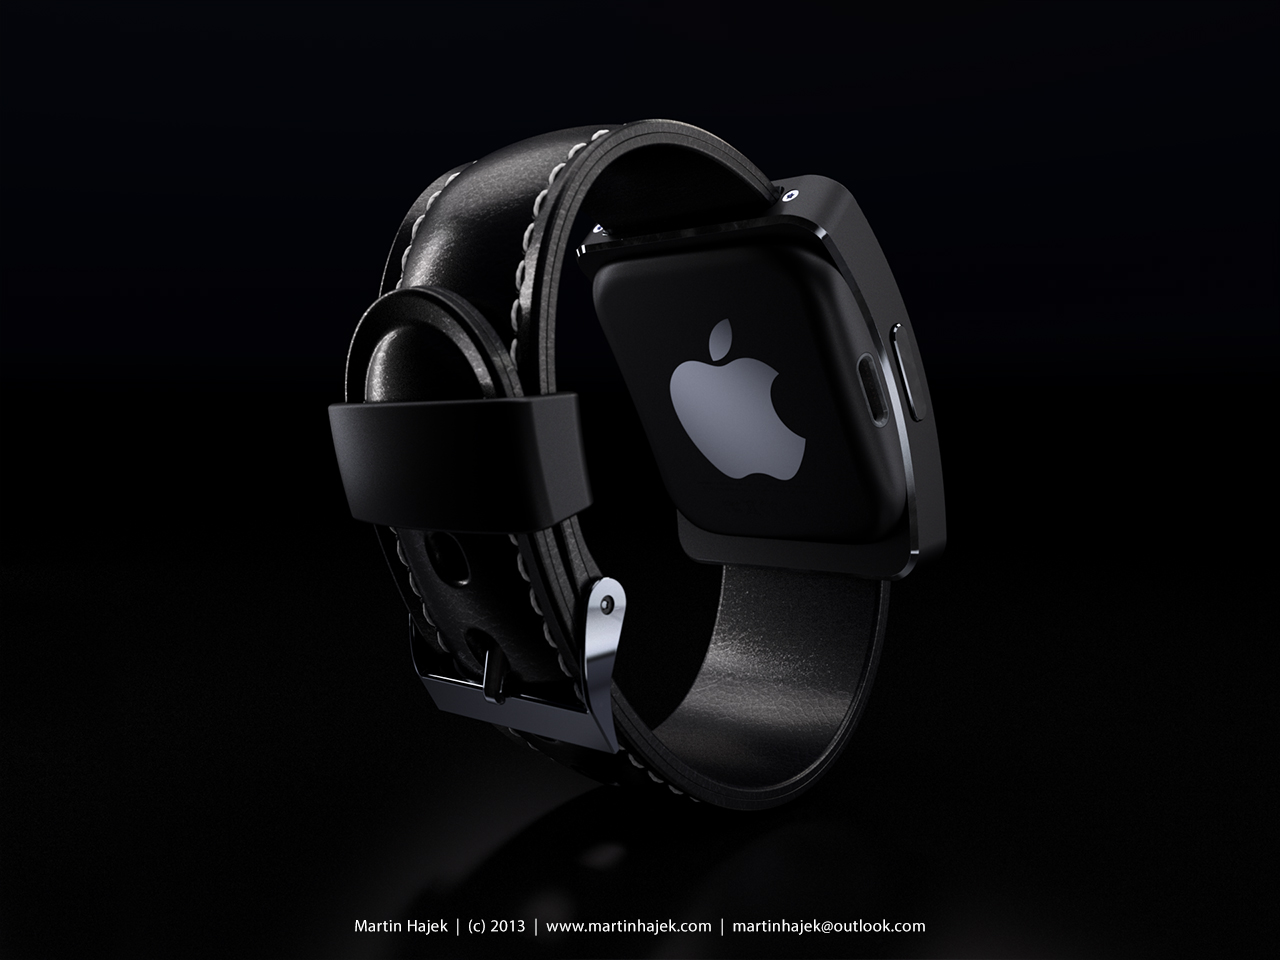 iWatch cocept (Martin Hajek, MacUser April 2013 issue 010)